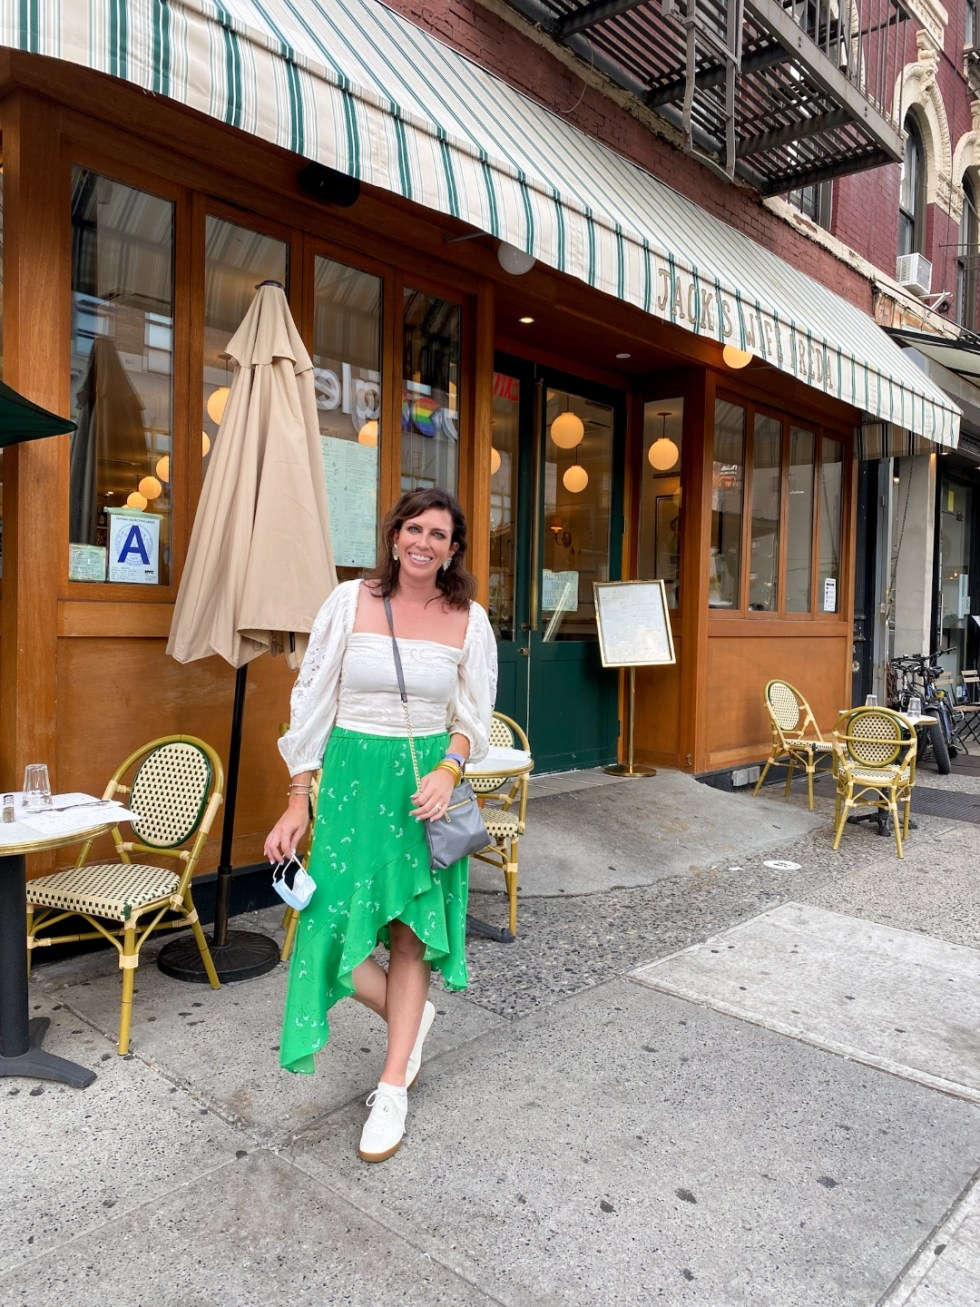 NYC Summer Weekend: Things to Do in NYC in the Summer - I'm Fixin' To - @imfixintoblog   NYC Summer Weekend by popular NC travel blog, I'm Fixin' To: image of a woman standing in front of Jack's Wife Freda restaurant.